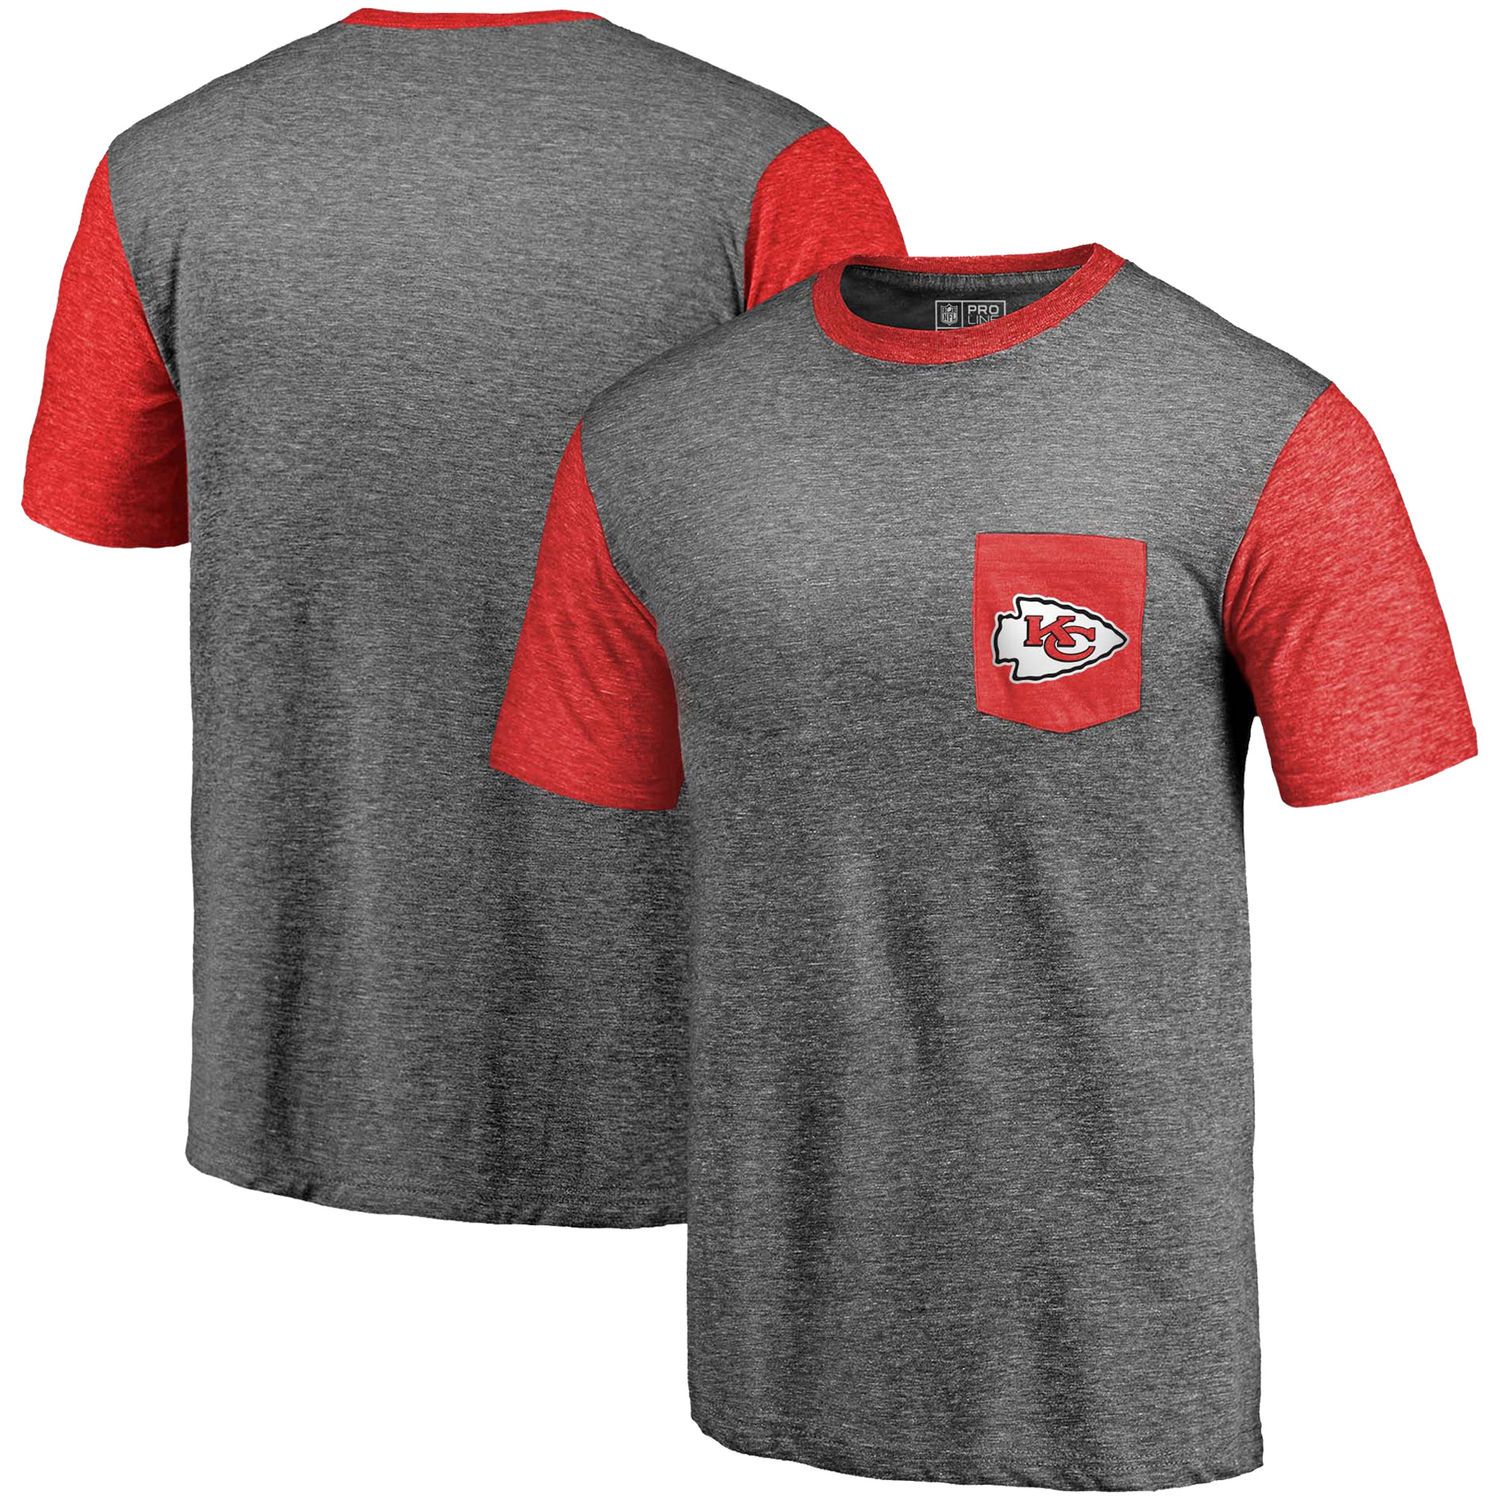 Men's Kansas City Chiefs Pro Line by Fanatics Branded Heathered Gray-Red Refresh Pocket T-Shirt